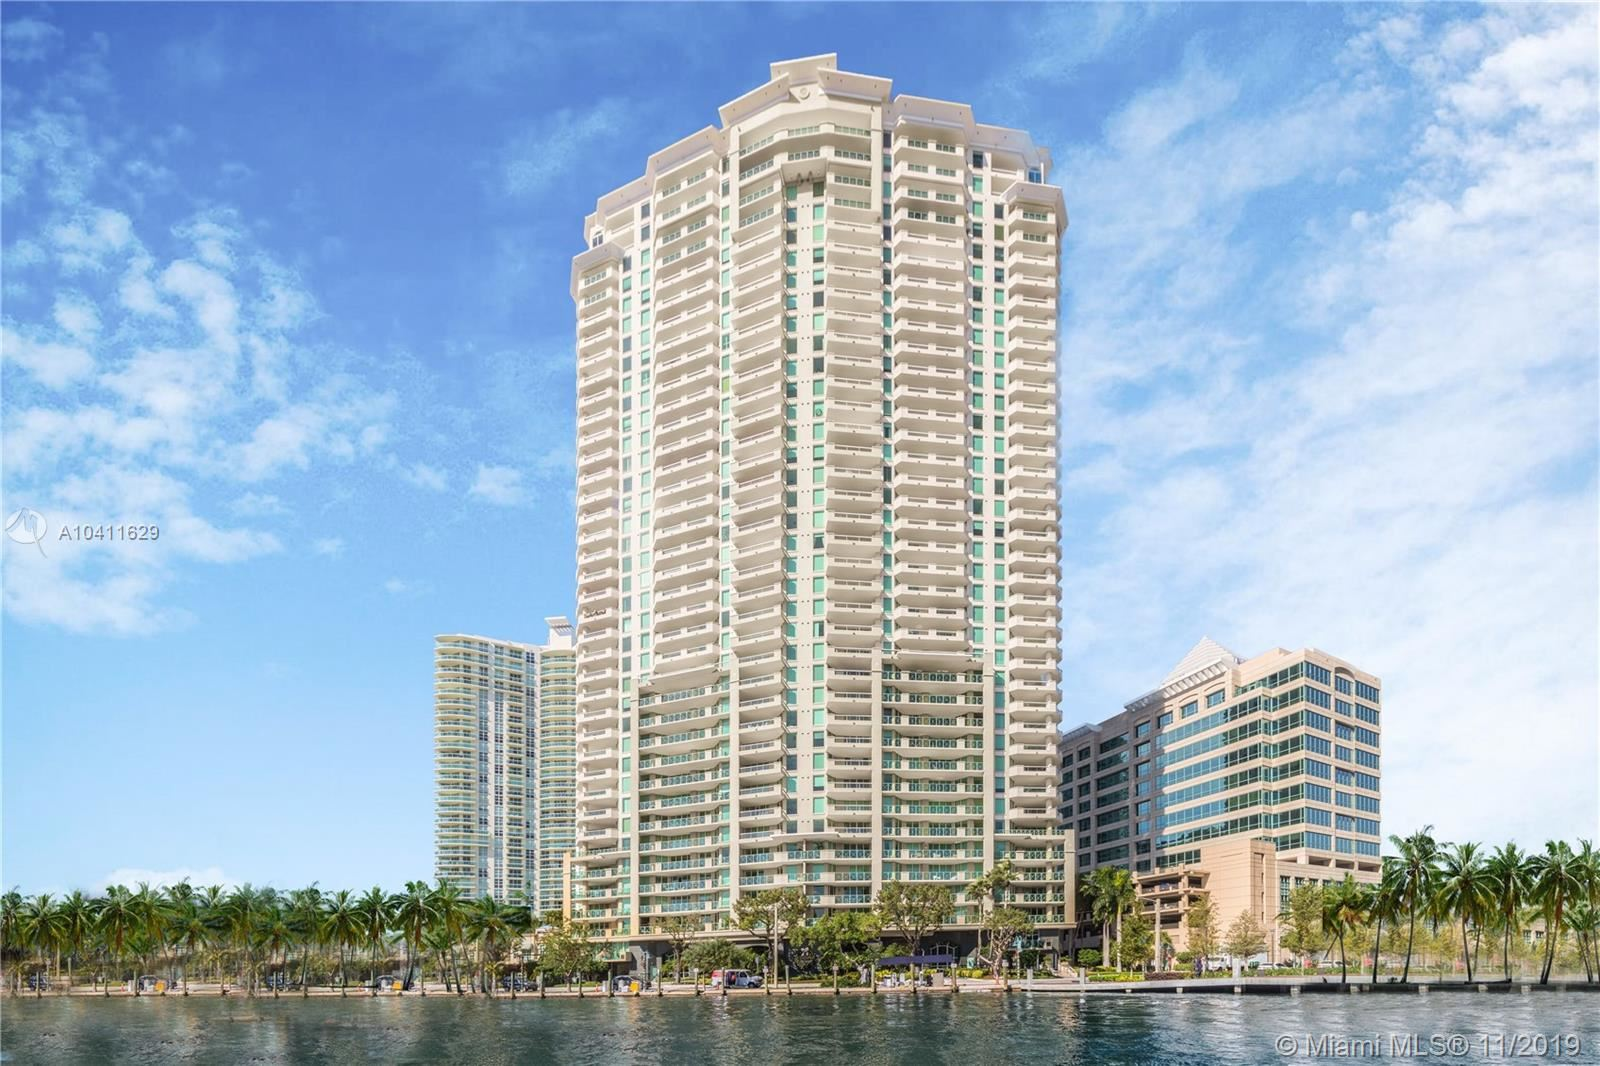 411 N New River Dr E #2303, Fort Lauderdale, FL 33301 - #: A10411629